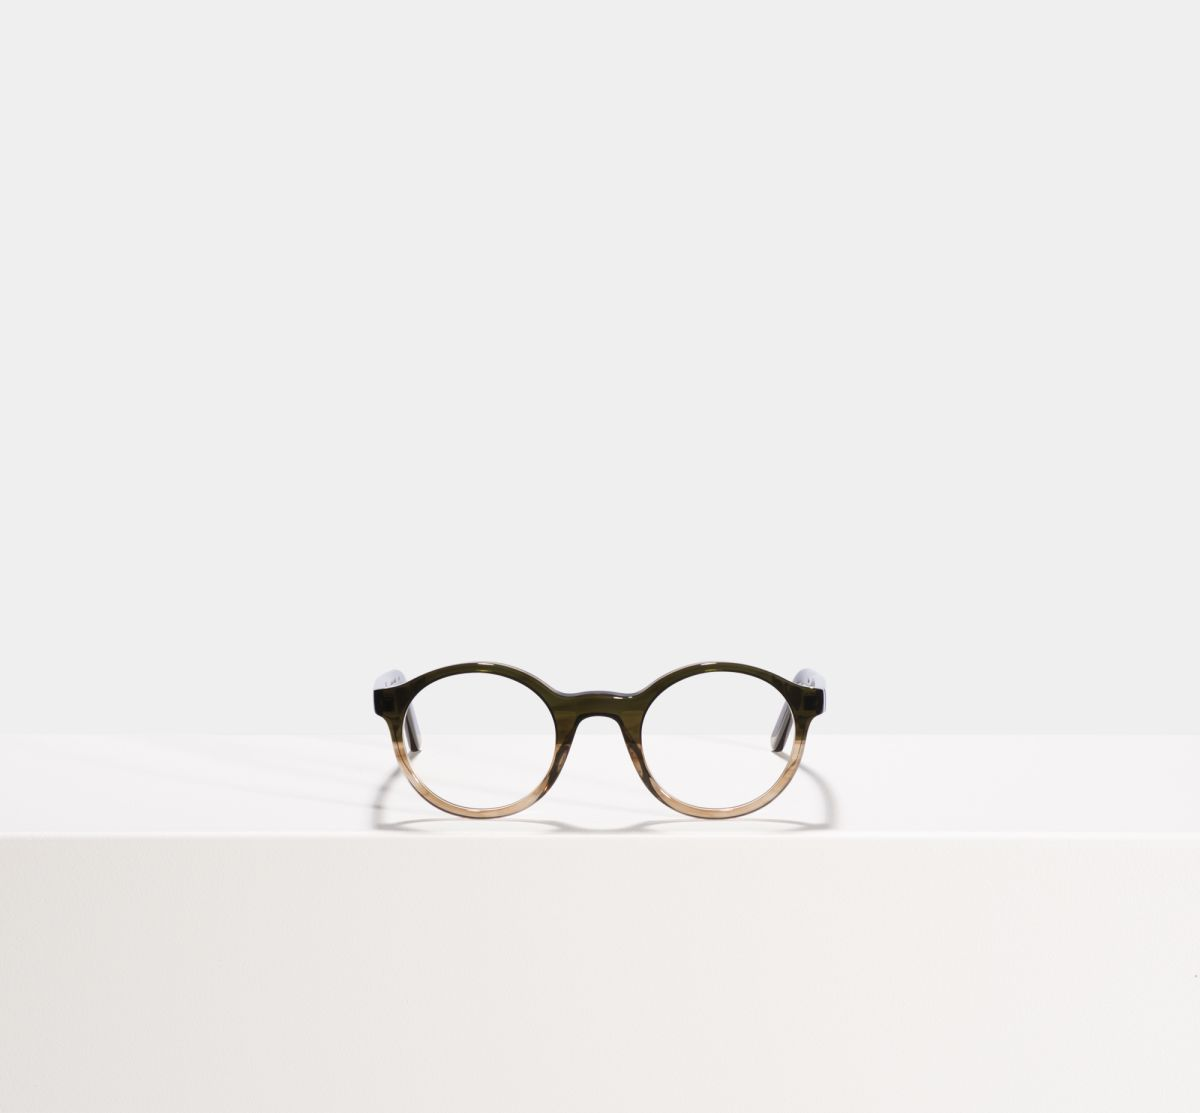 Jamie rund Acetat glasses in Olive Gradient by Ace & Tate